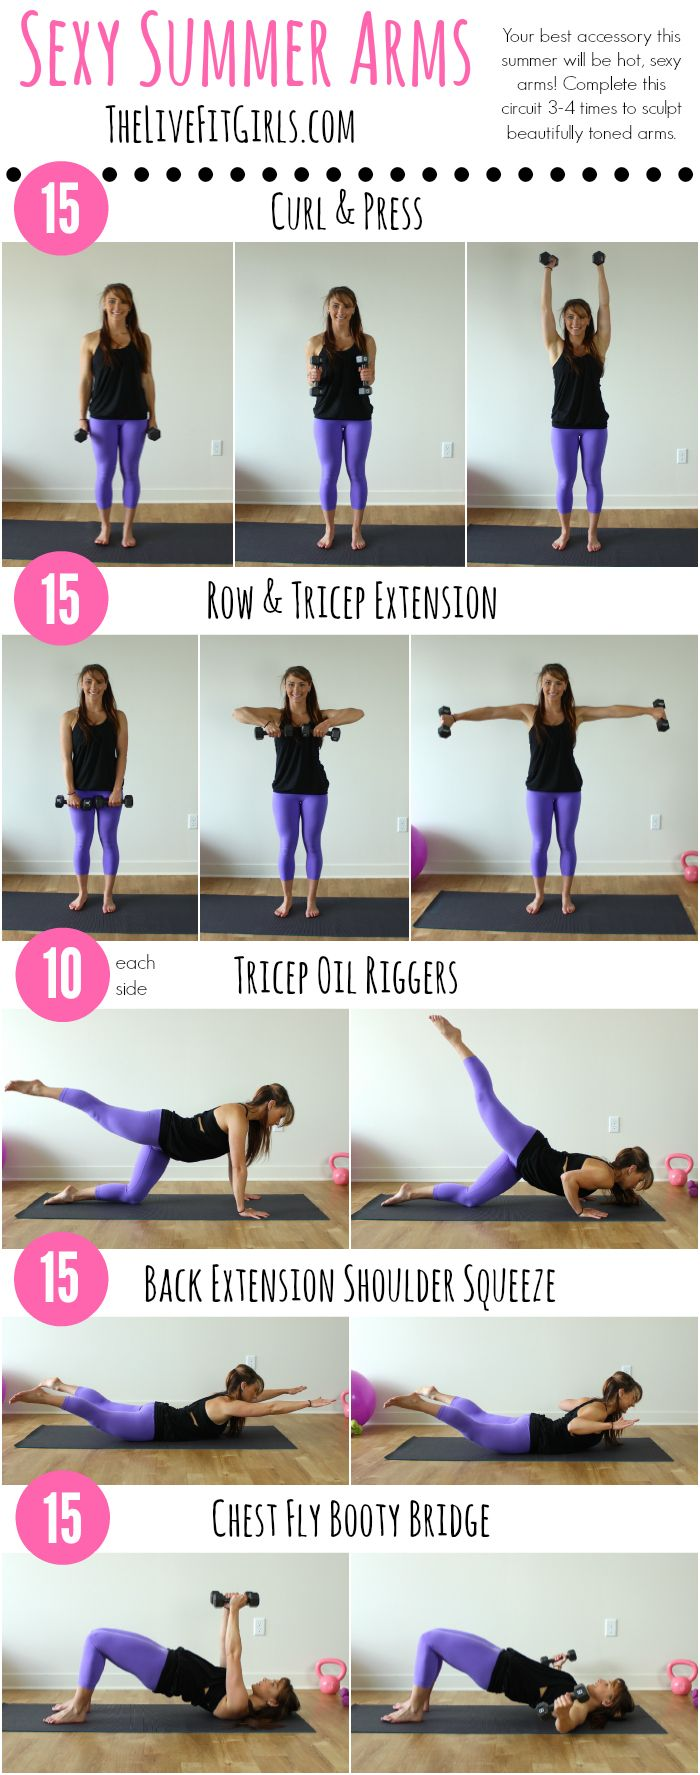 Who doesn't want toned, sexy arms for summer? Add this arm workout to tone up and sculpt beautiful muscles